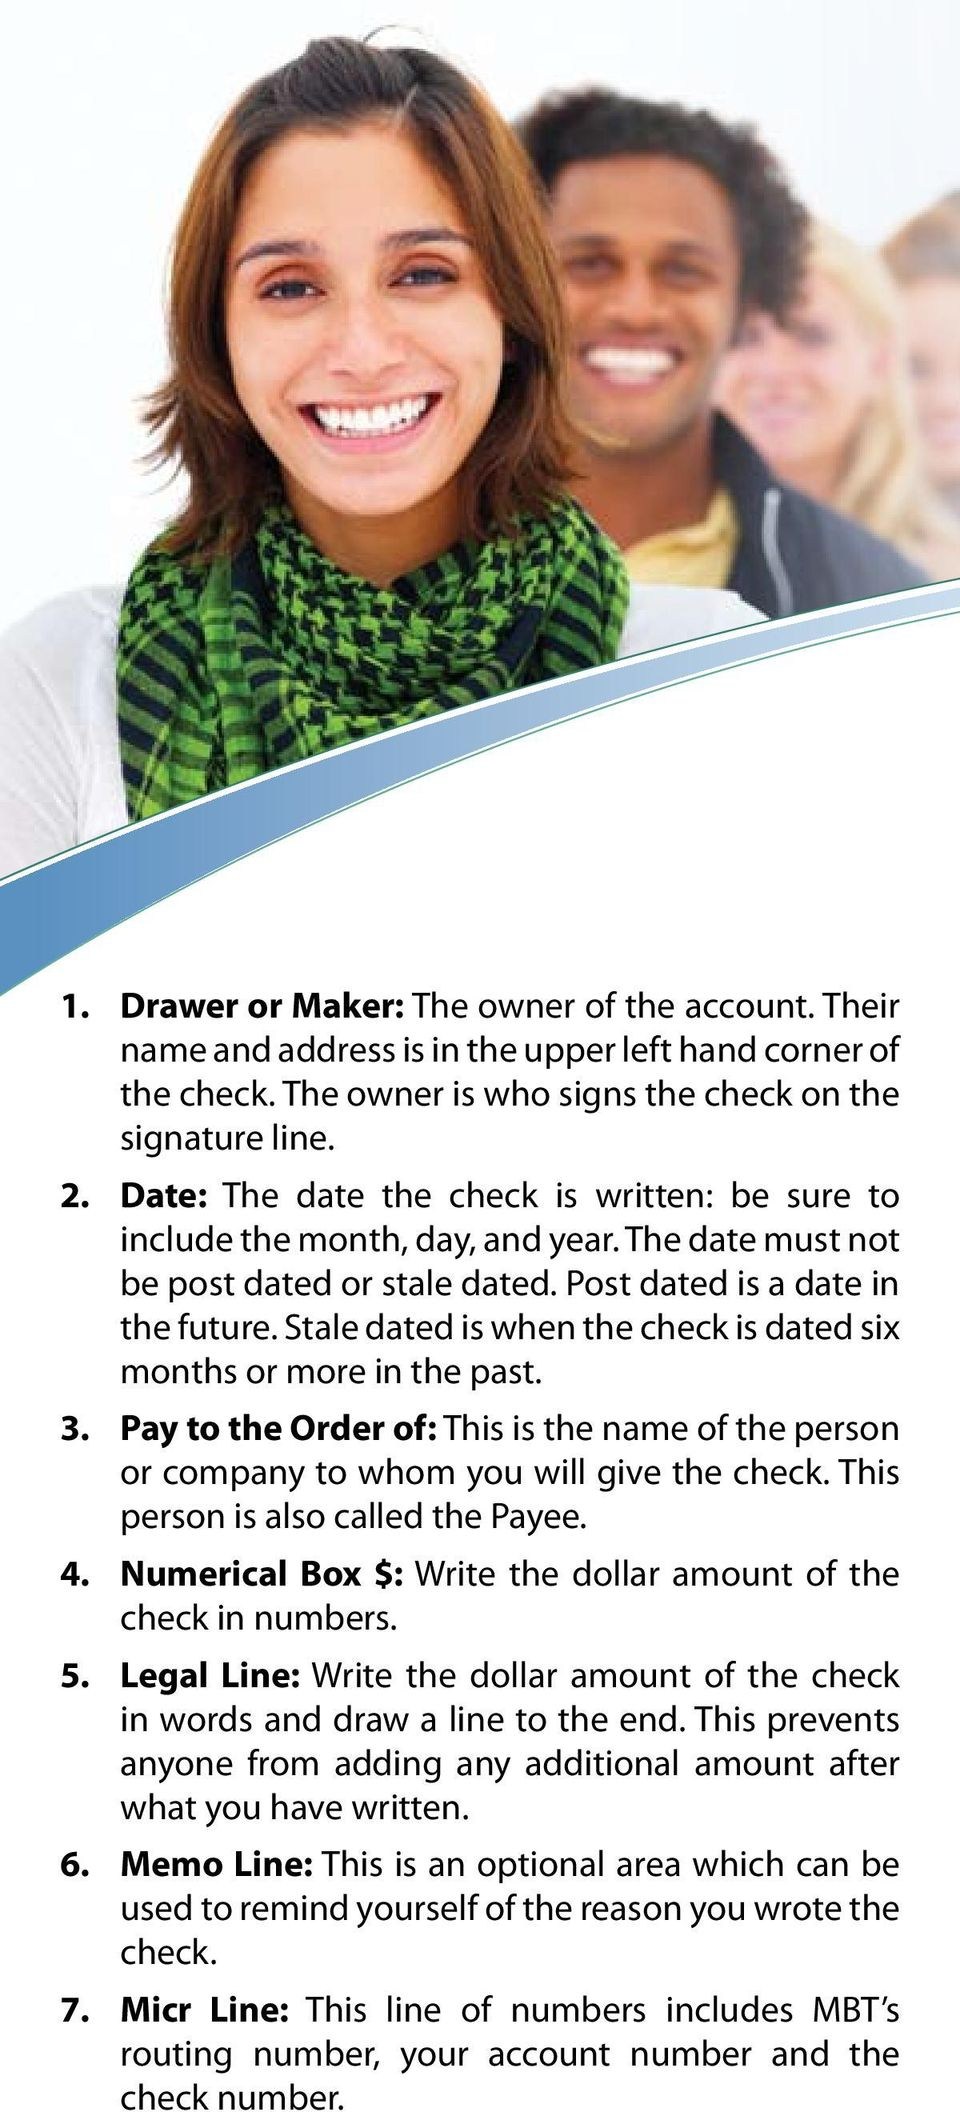 Stale dated is when the check is dated six months or more in the past. Pay to the Order of: This is the name of the person or company to whom you will give the check.